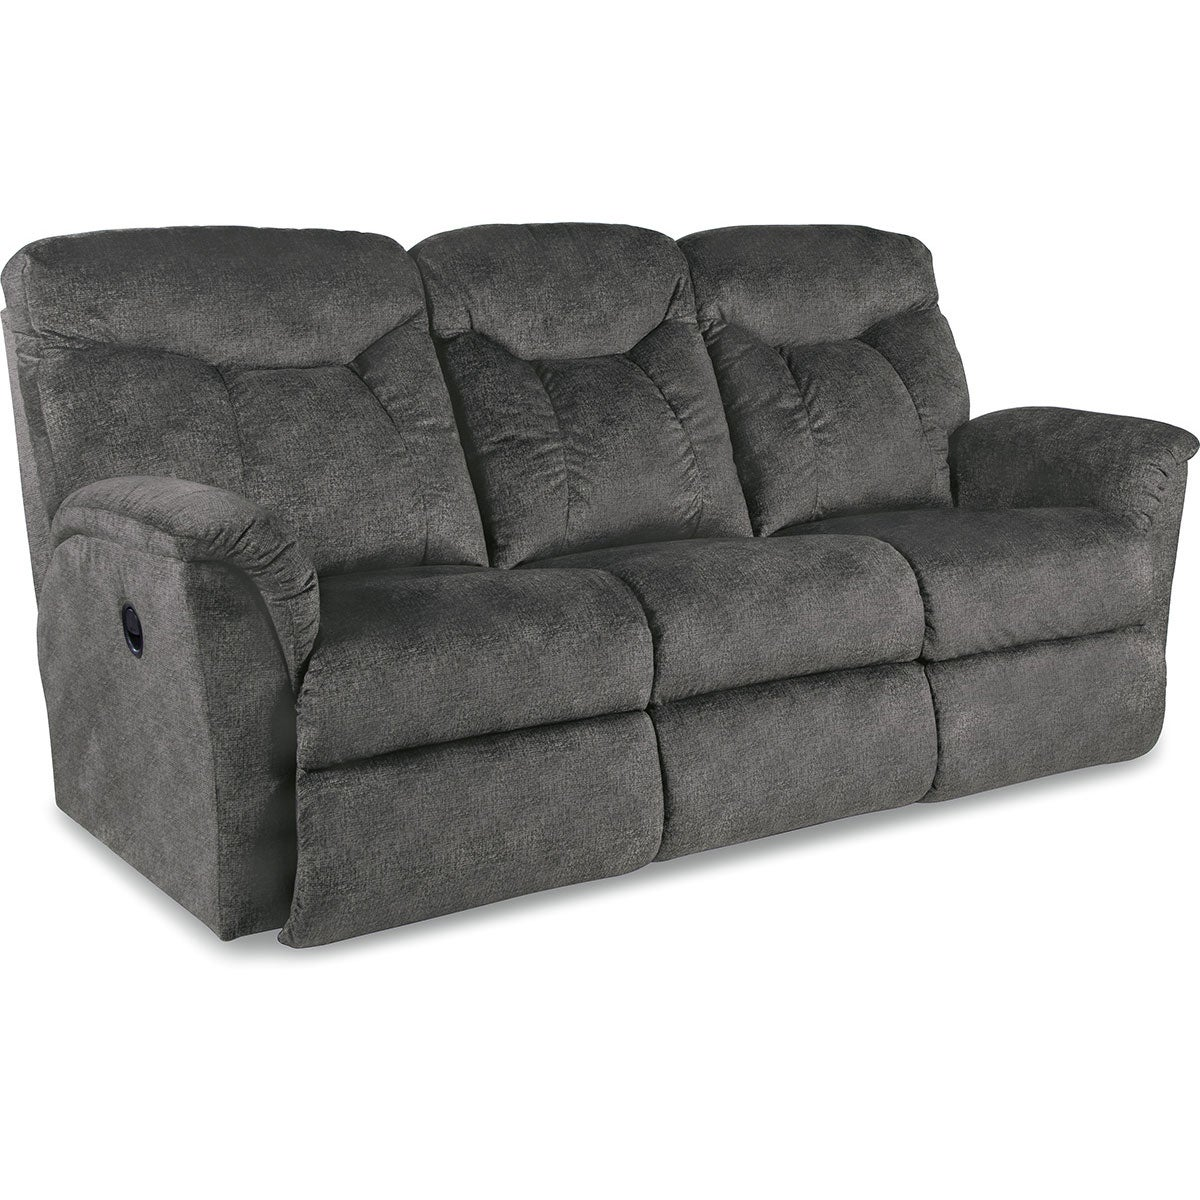 Lazy Boy Recliner Sofa Fortune La Z Time Full Reclining Sofa Thesofa